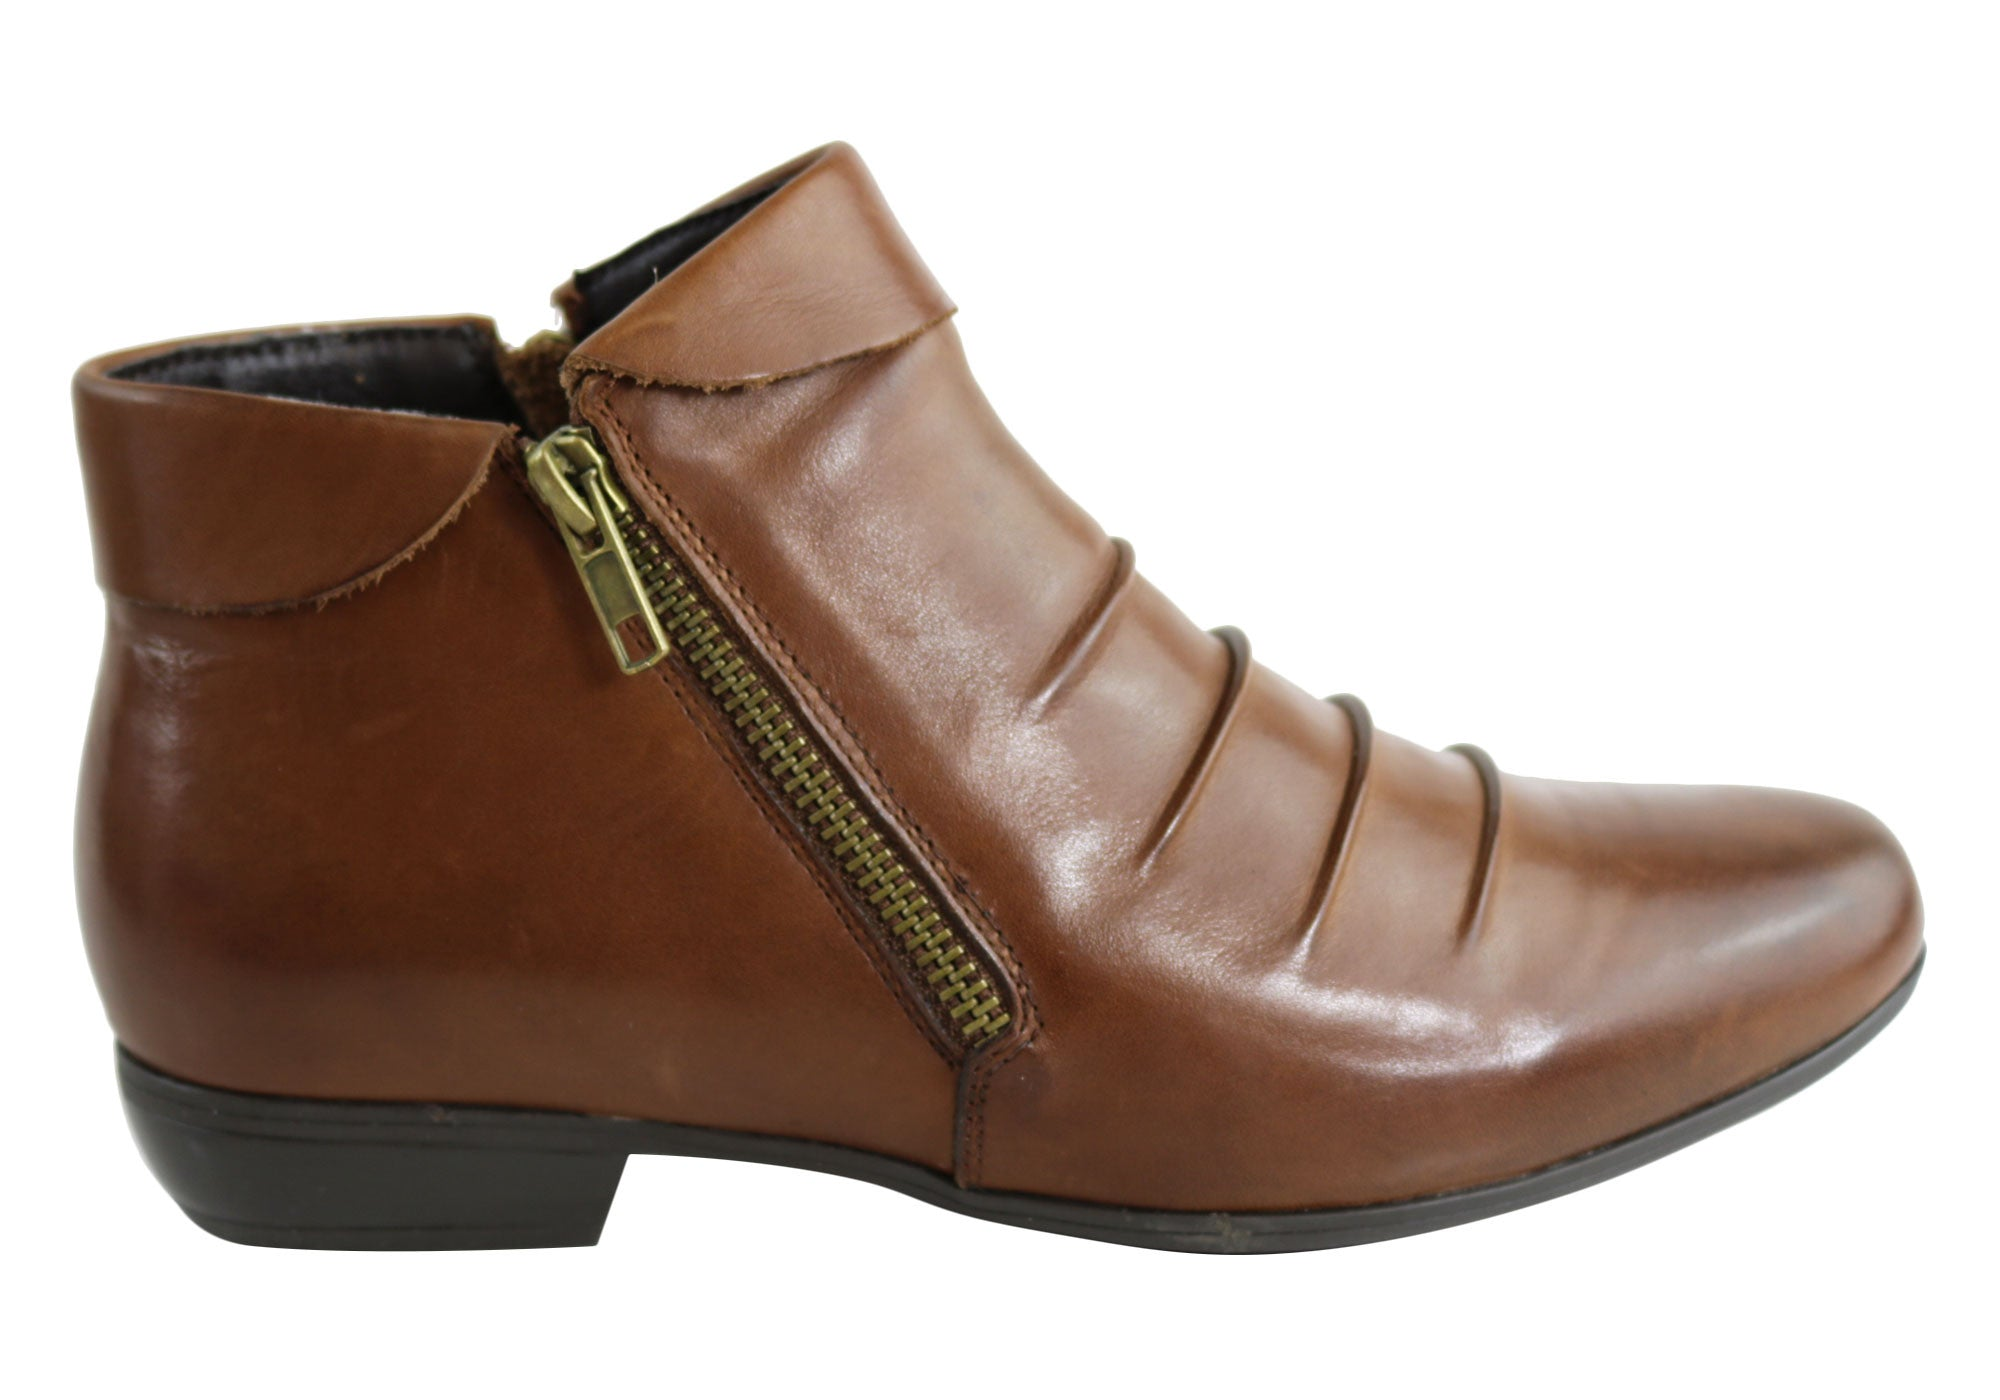 0fa984a4c Natural Comfort Julie Womens Comfortable Leather Ankle Boots   Brand ...